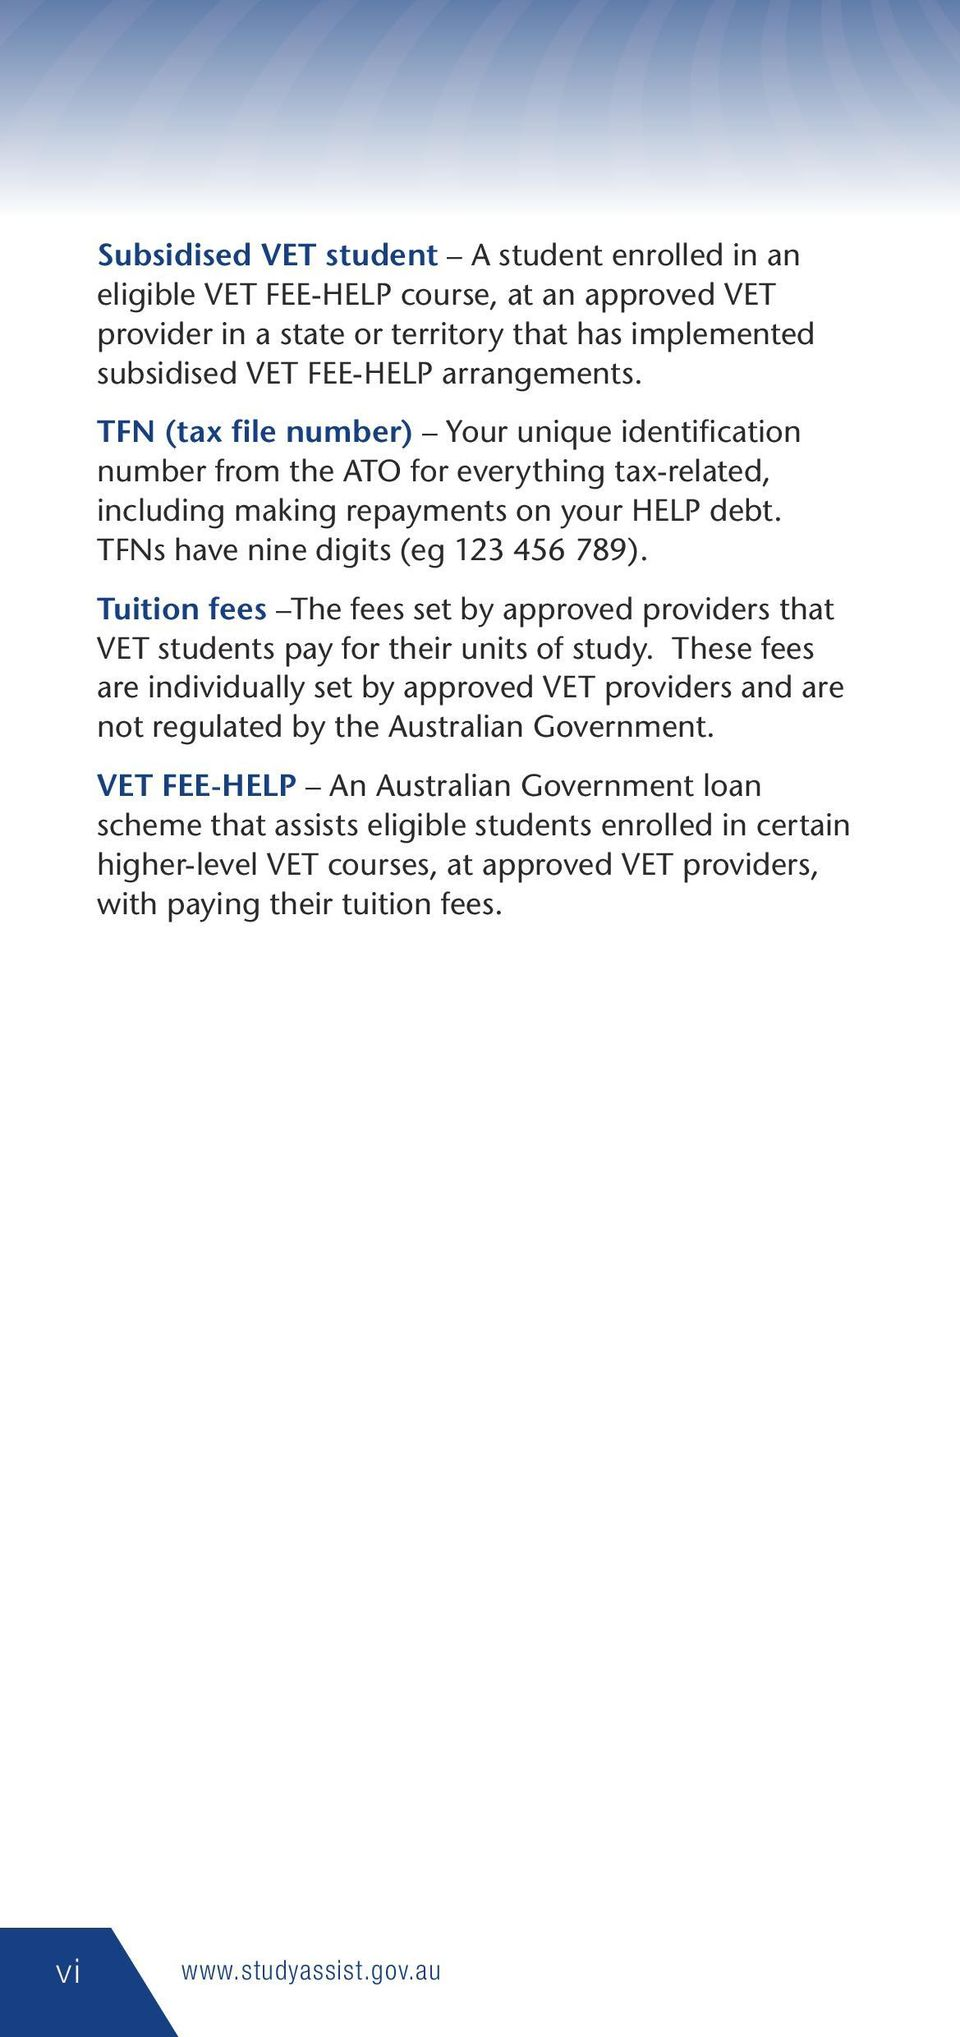 Tuition fees The fees set by approved providers that VET students pay for their units of study.